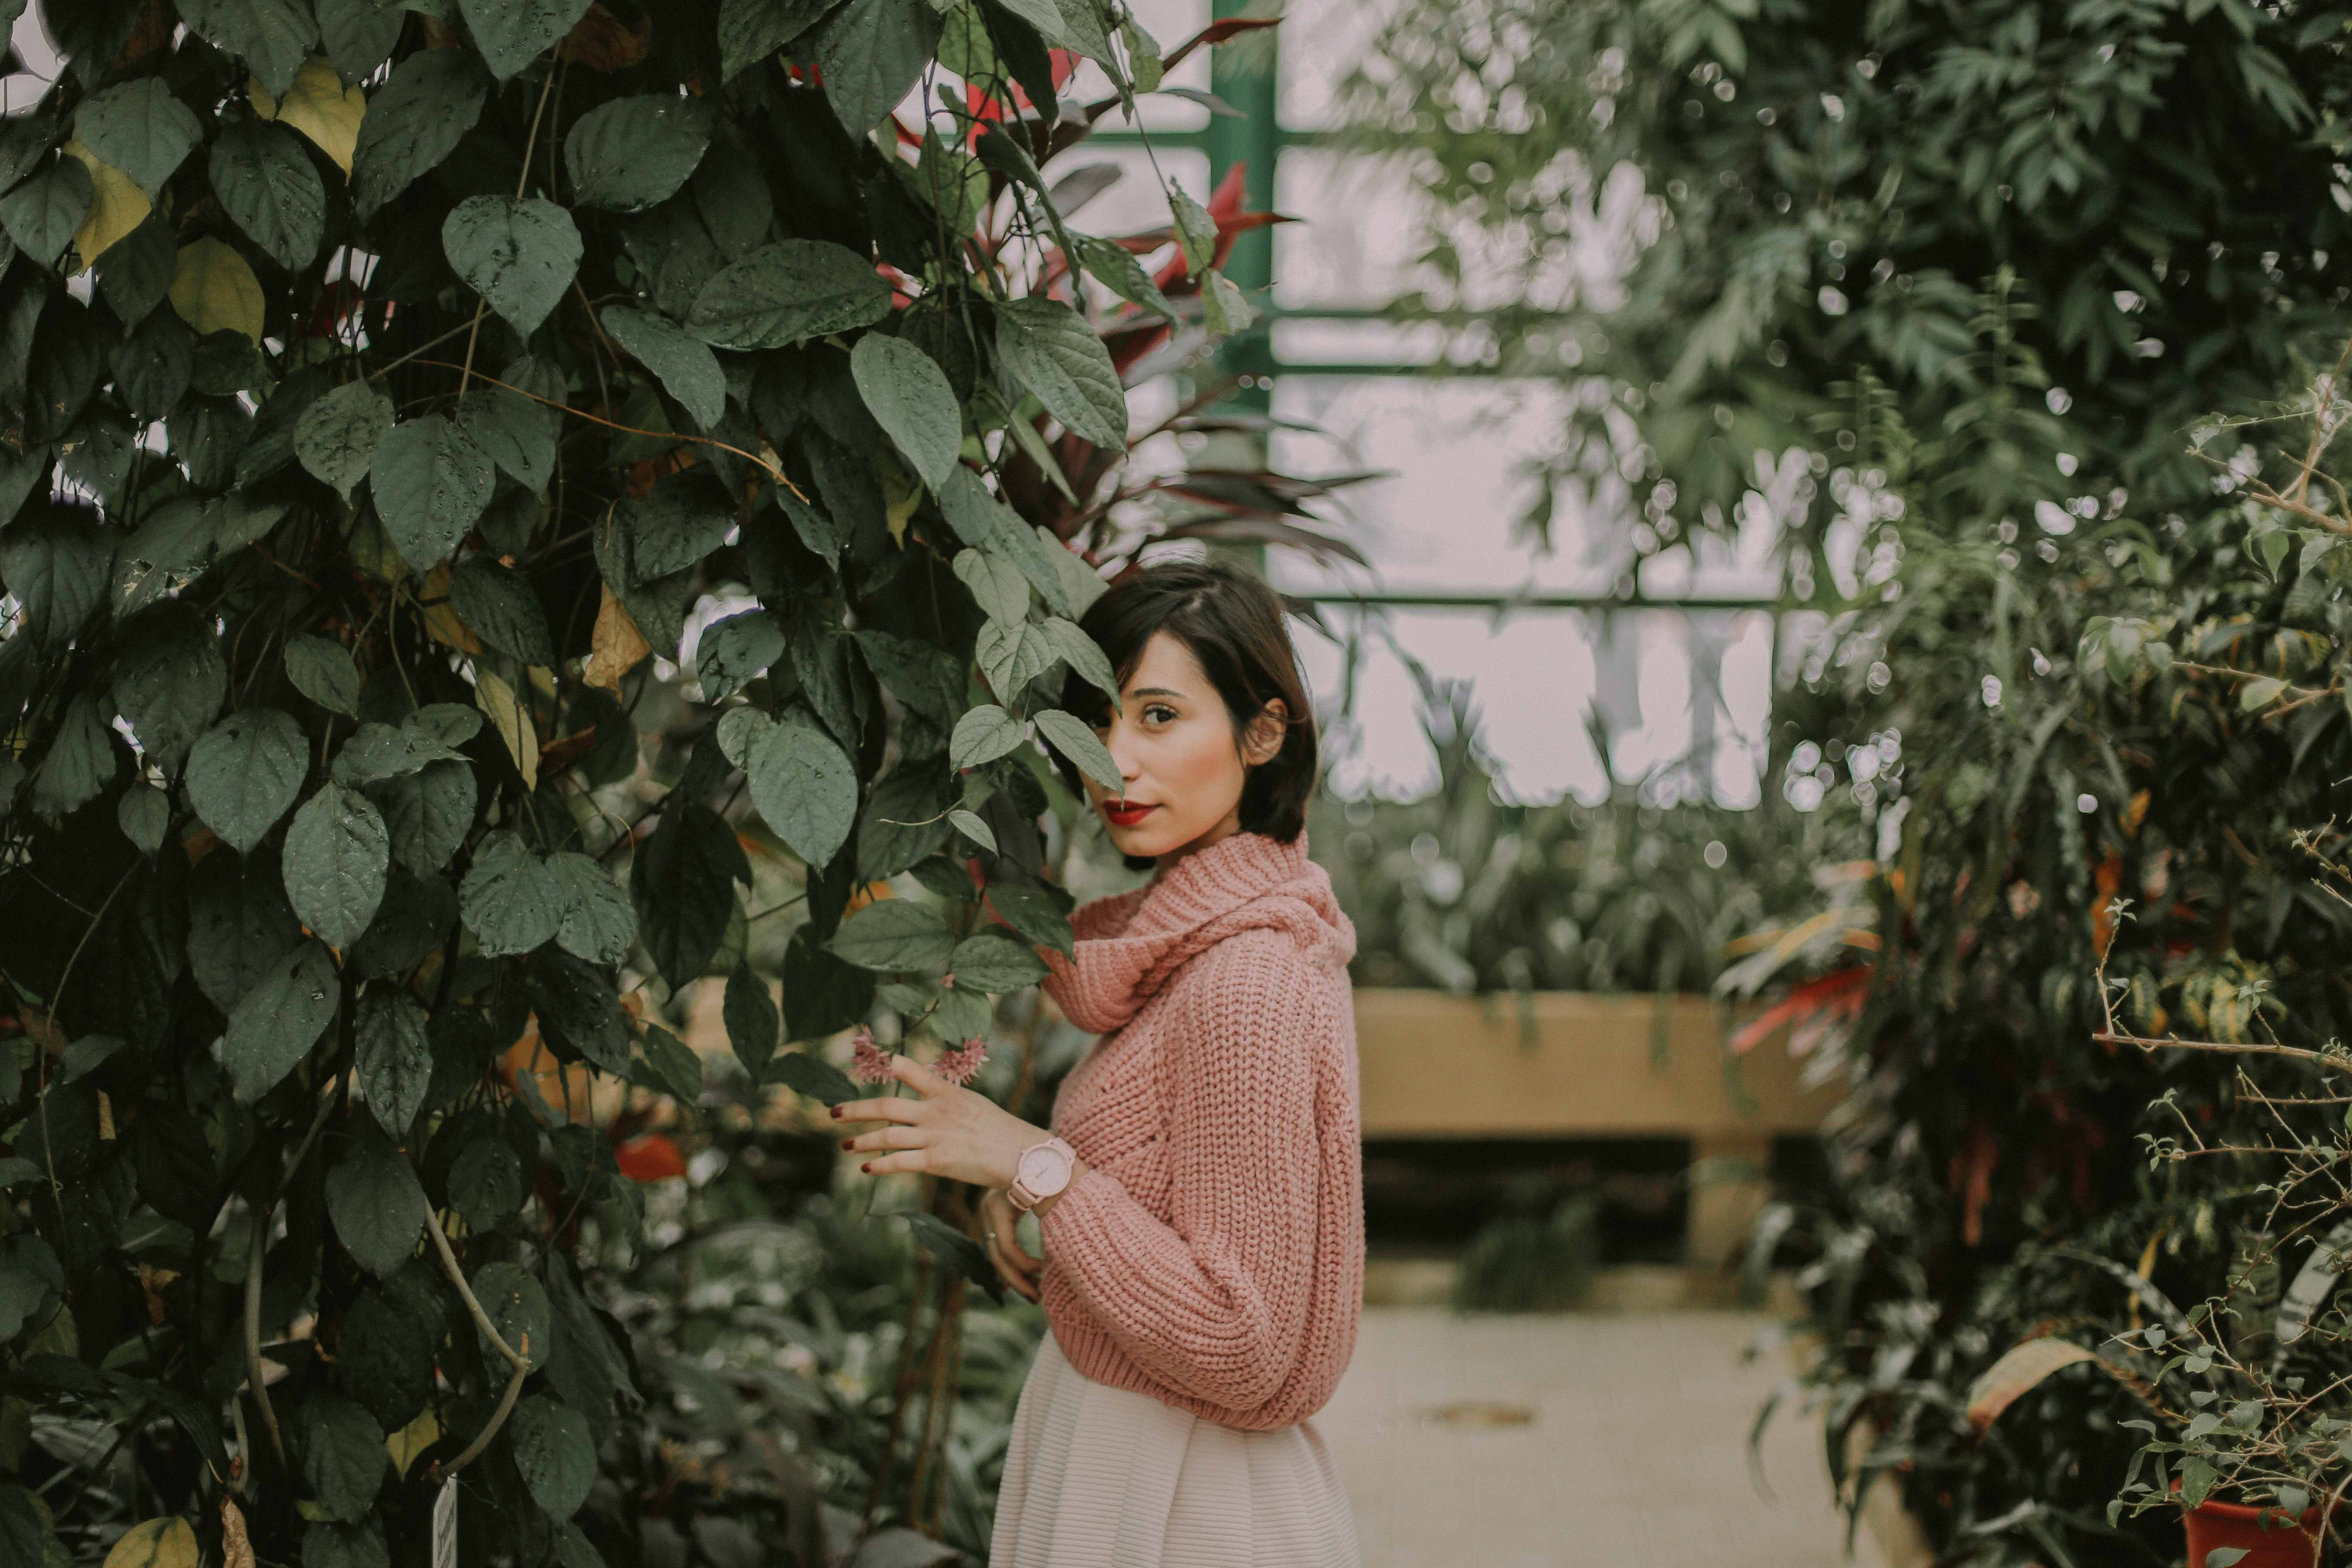 A woman in a pink cowl-neck sweater stands against a plant in a greenhouse